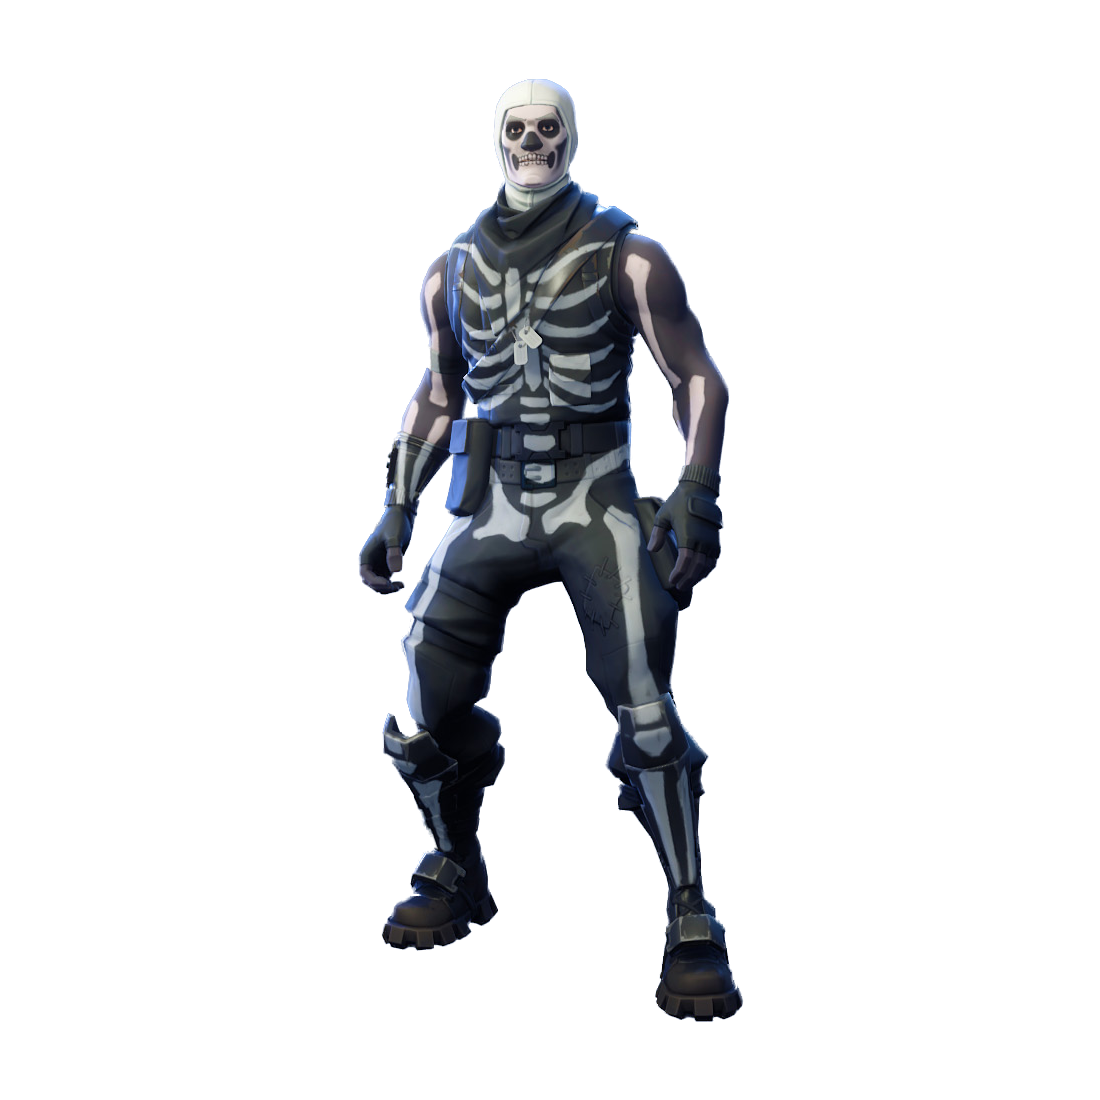 Skull trooper png image. Fortnite clipart default skin transparent svg free download